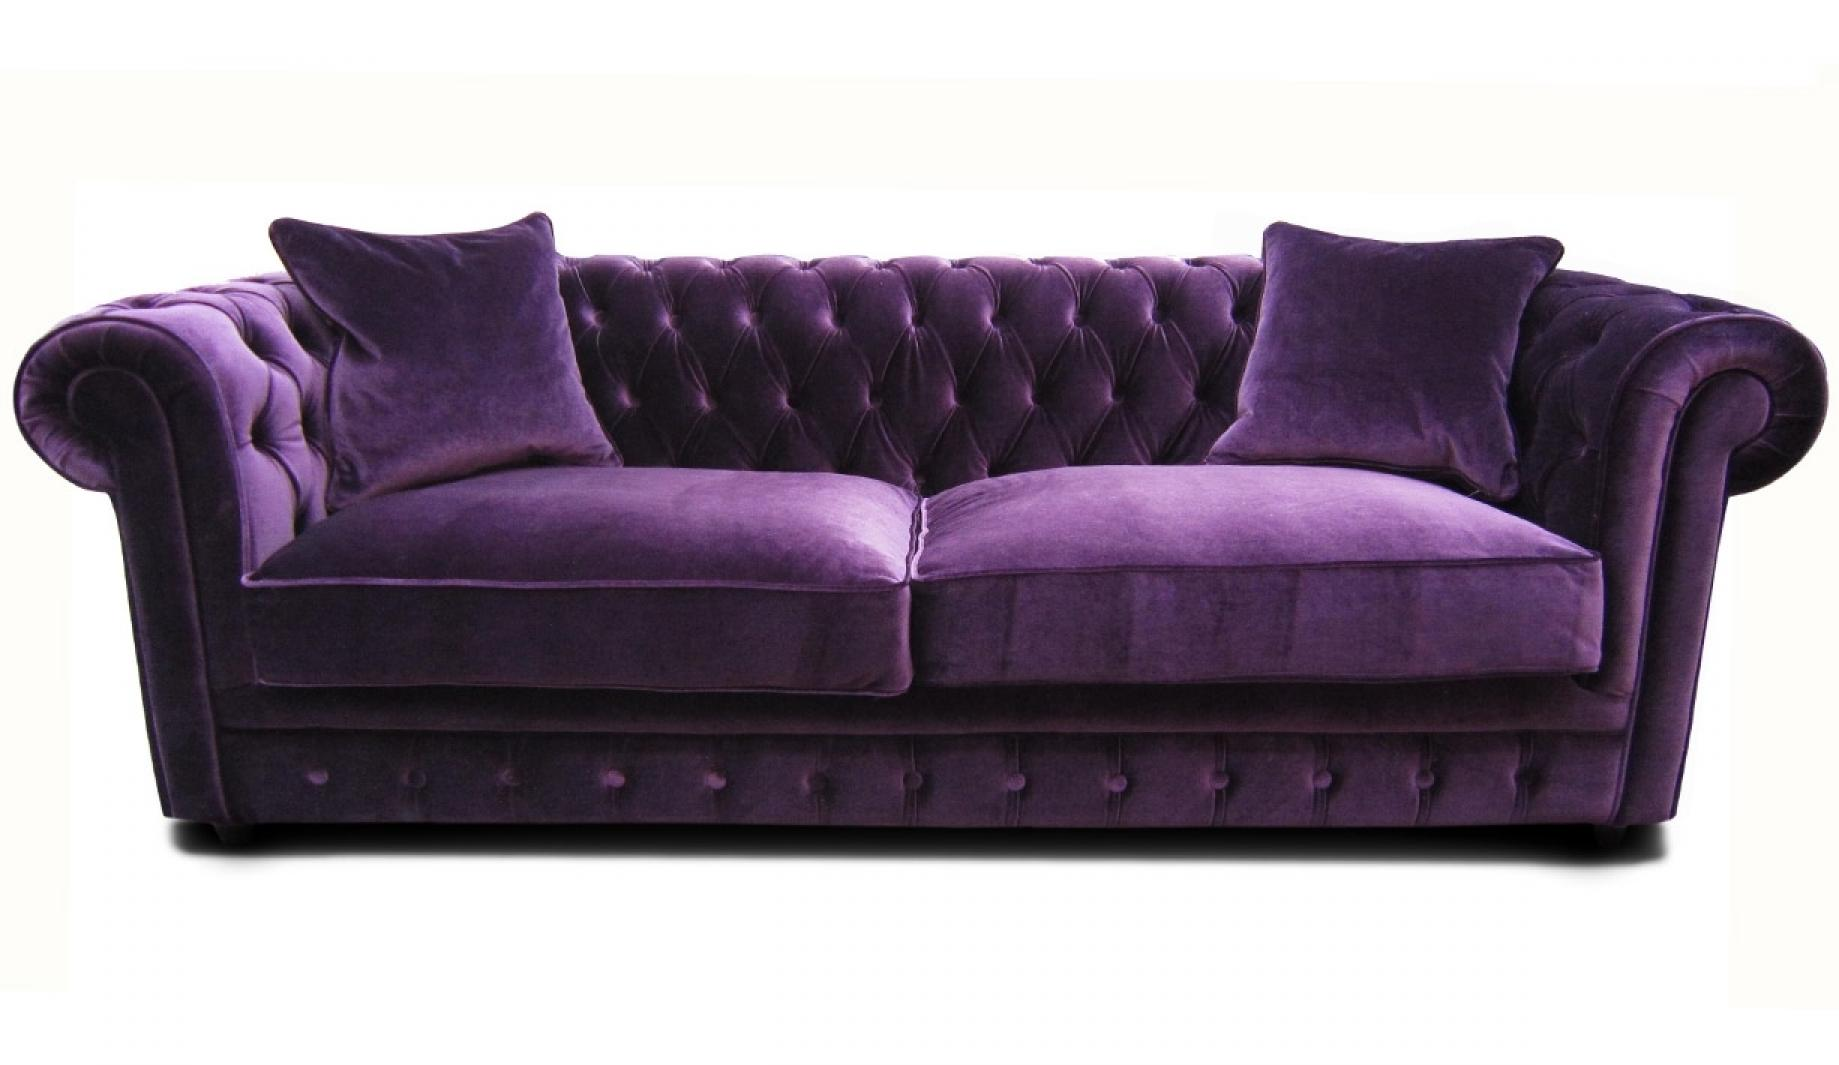 Chesterfield vintage sofa sir chesterfield ledermbel for Canape chesterfield cuir pas cher